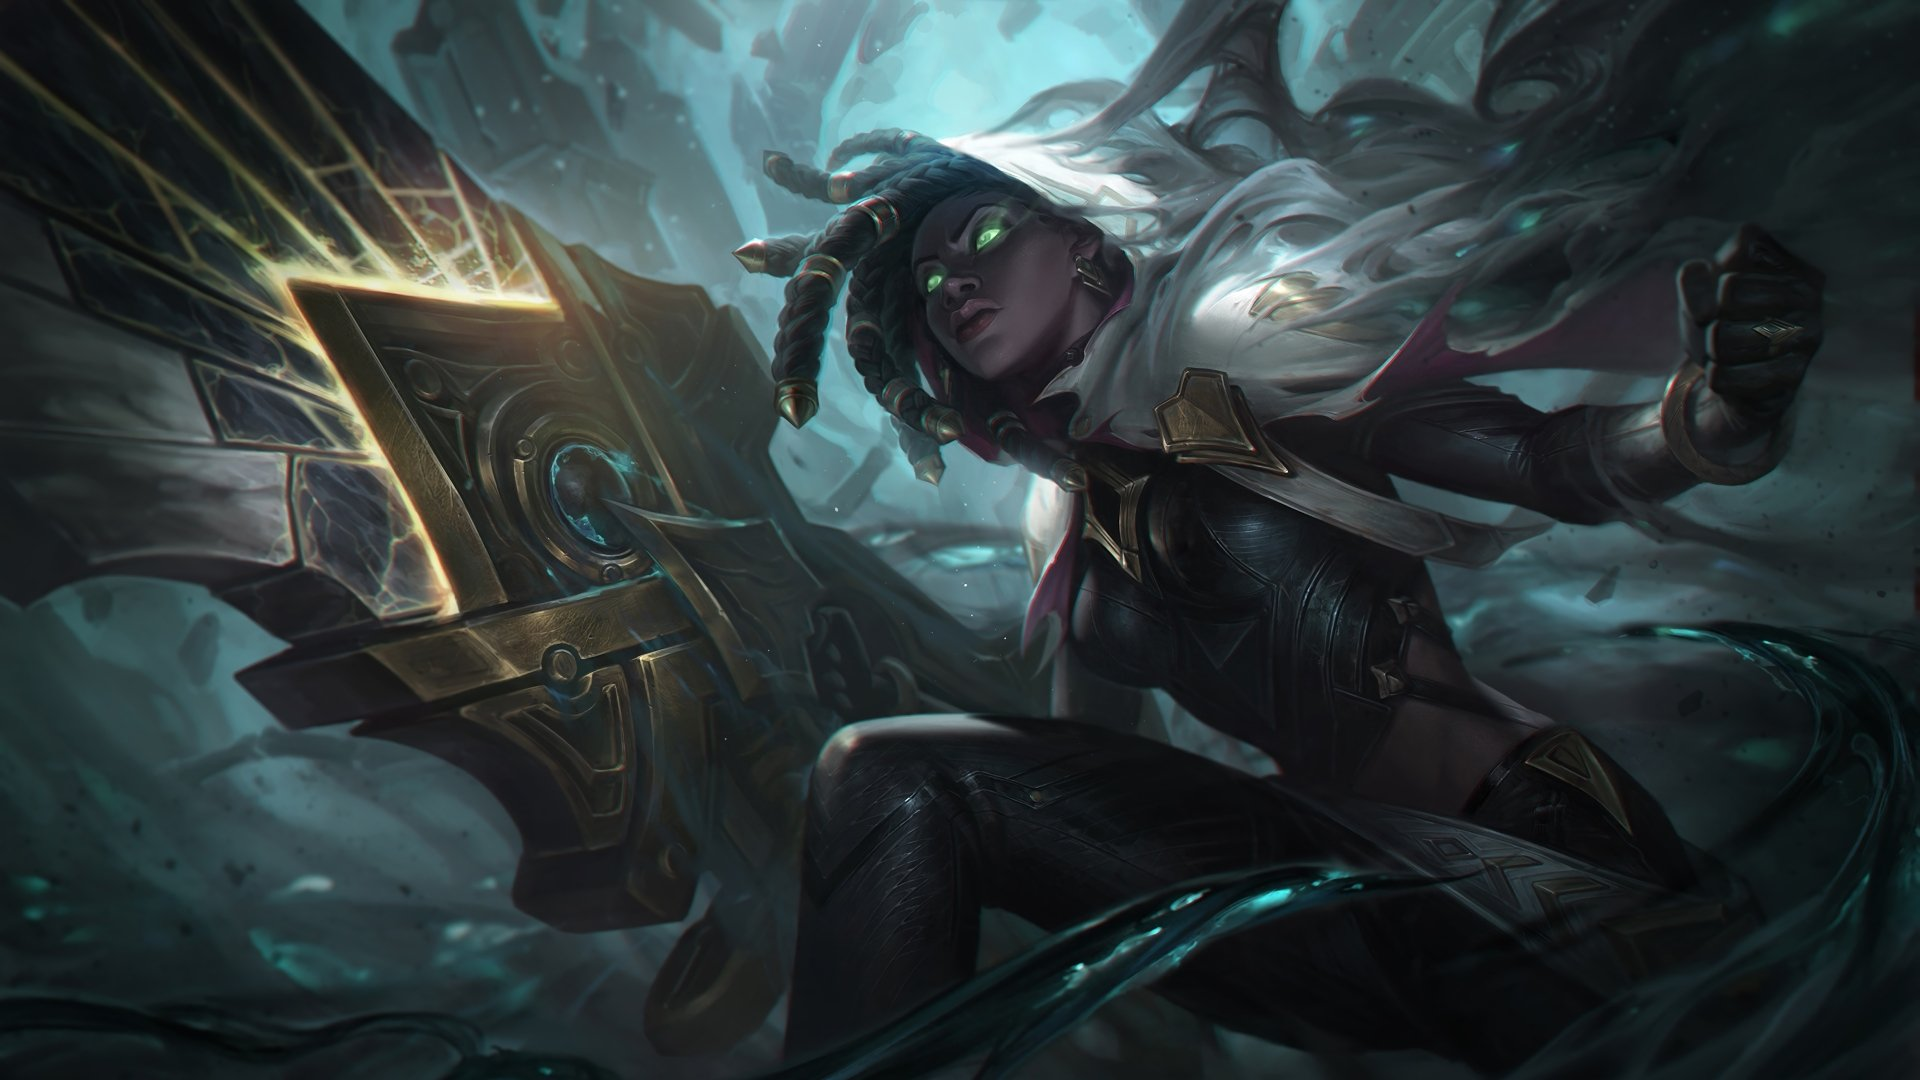 11 Senna League Of Legends Hd Wallpapers Background Images Wallpaper Abyss